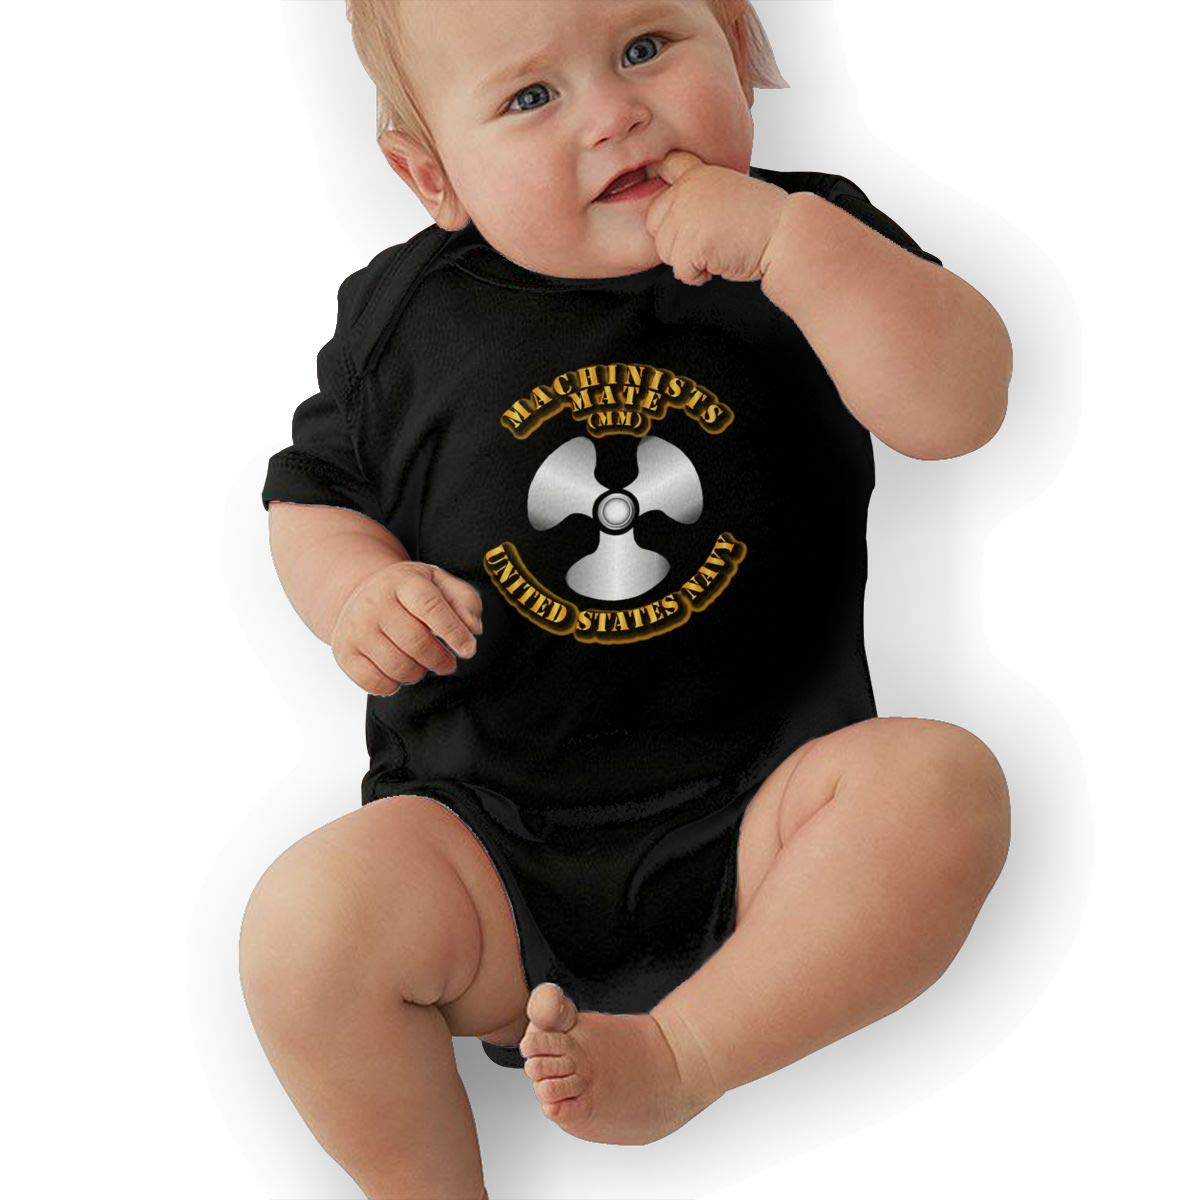 Navy Rate Machinists Mate Baby Pajamas Bodysuits Clothes Onesies Jumpsuits Outfits Black